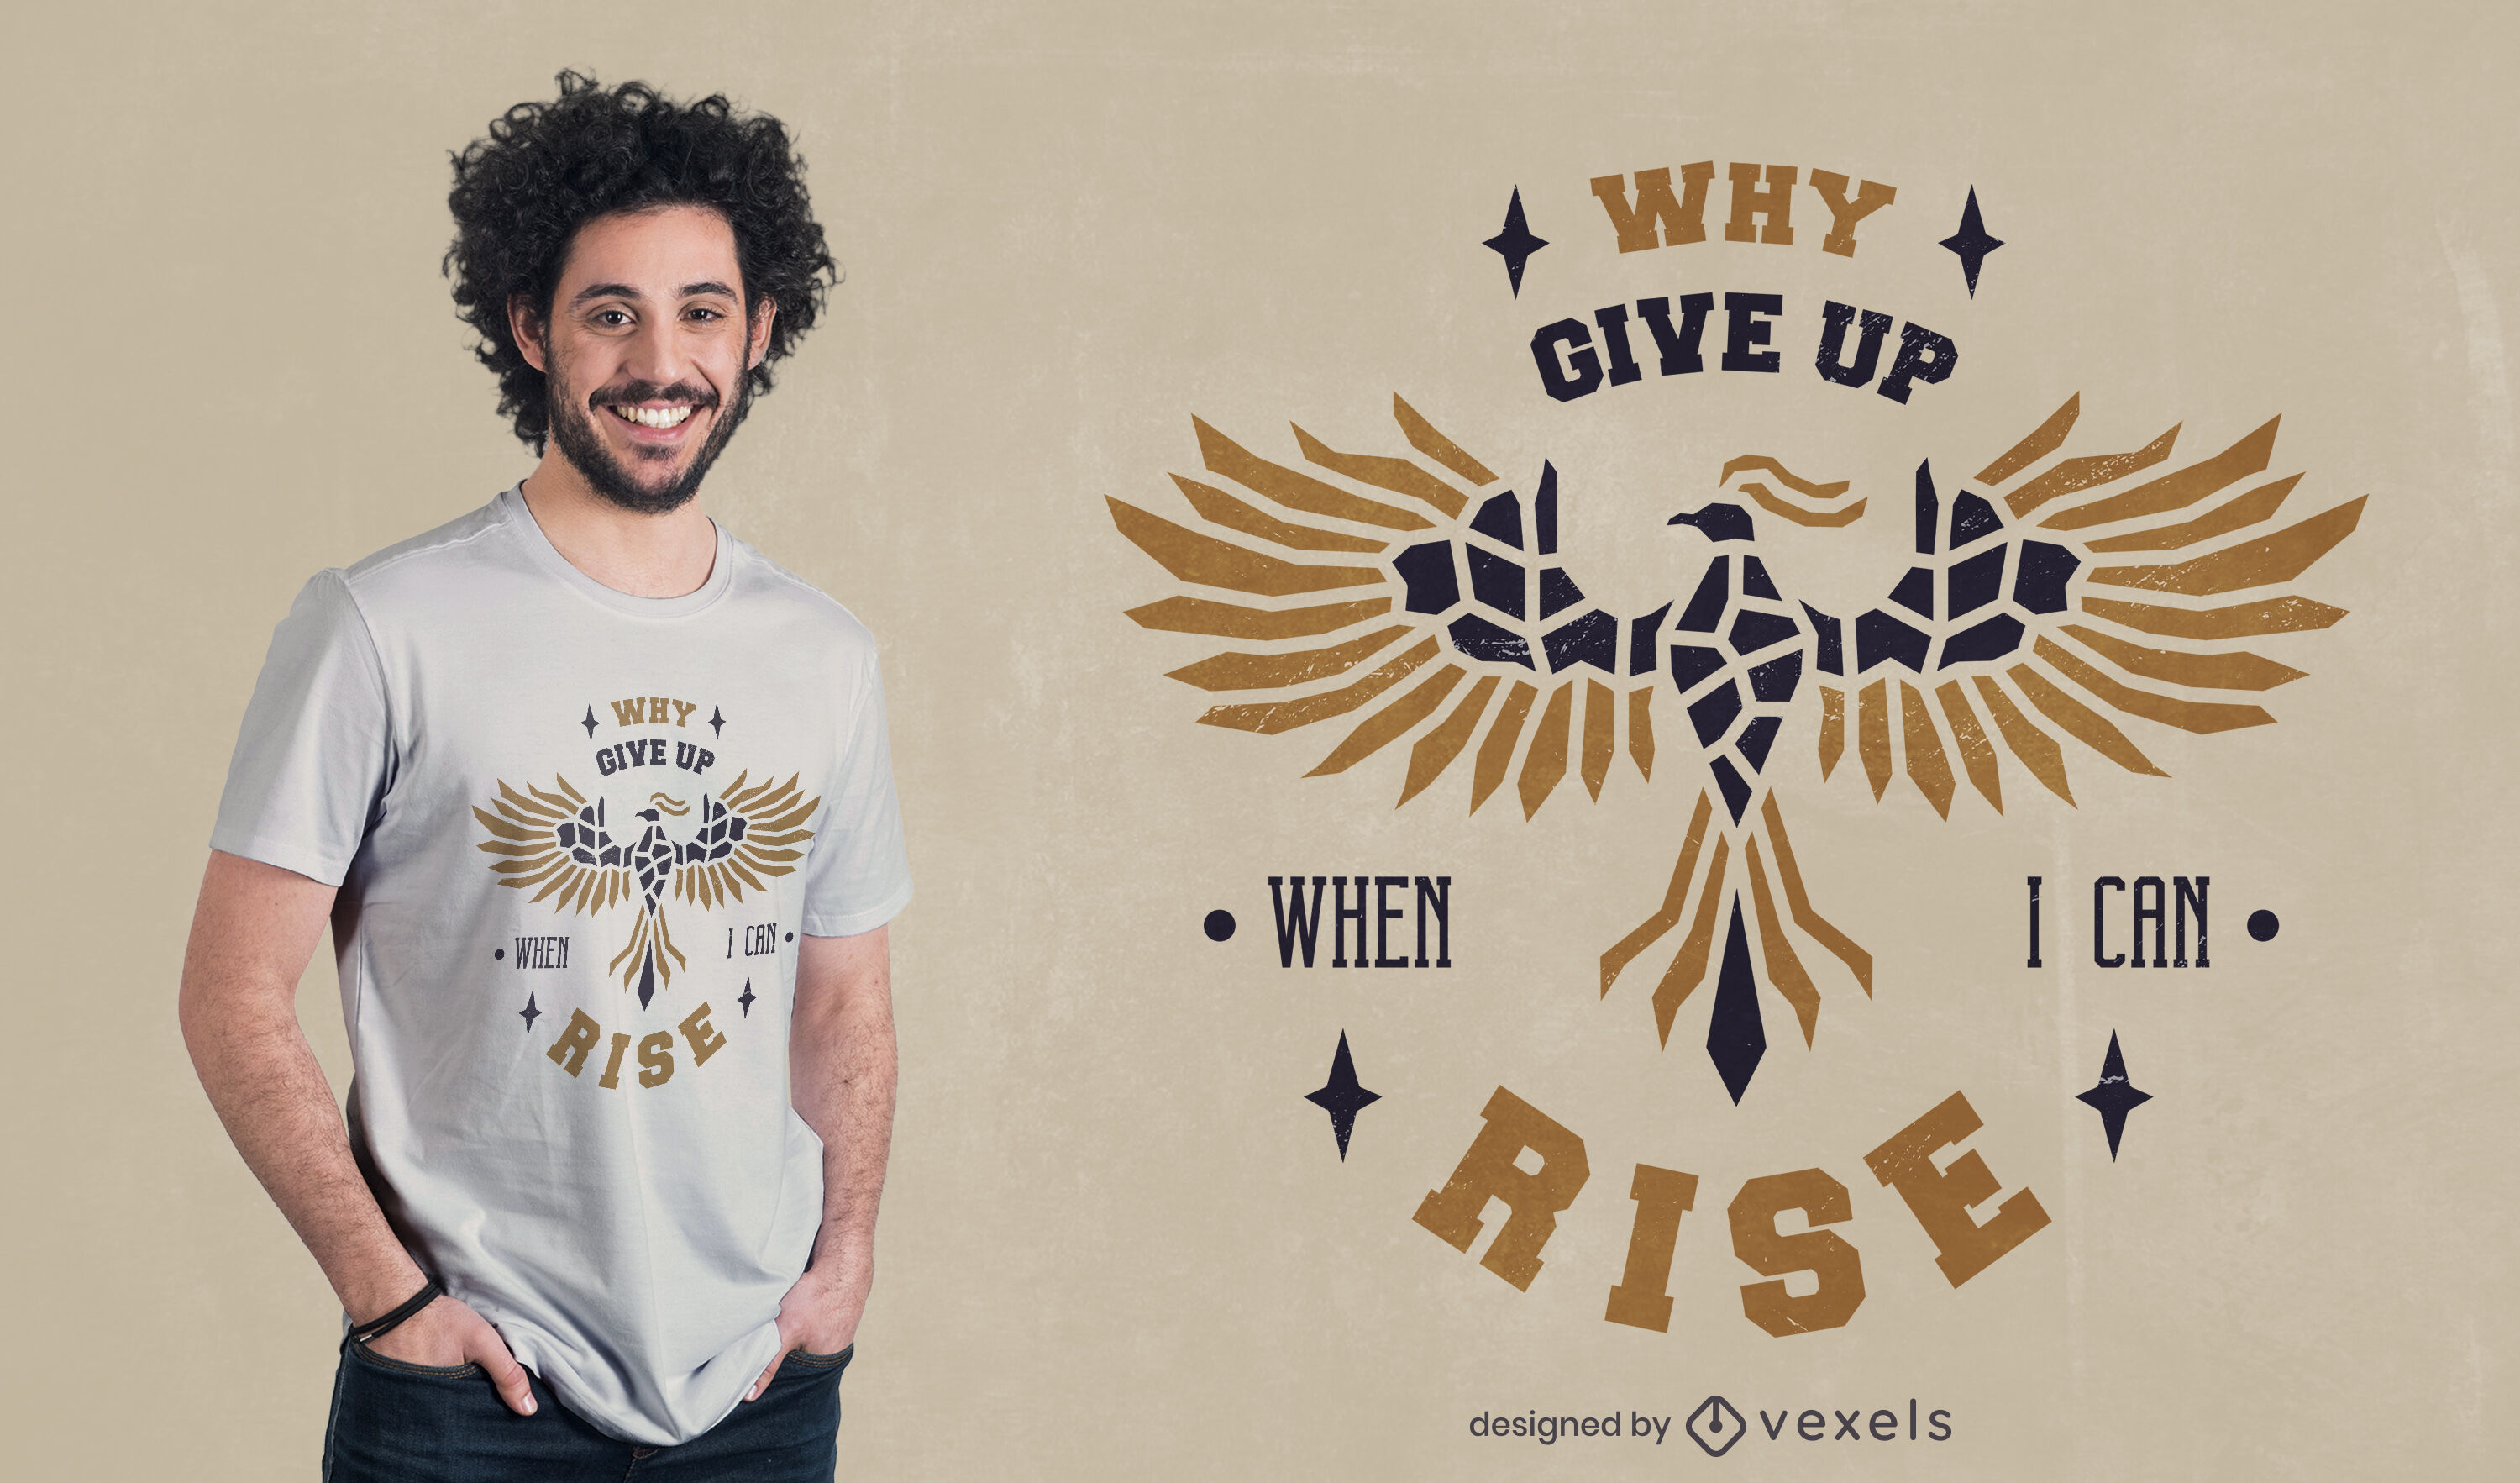 Why give up t-shirt design